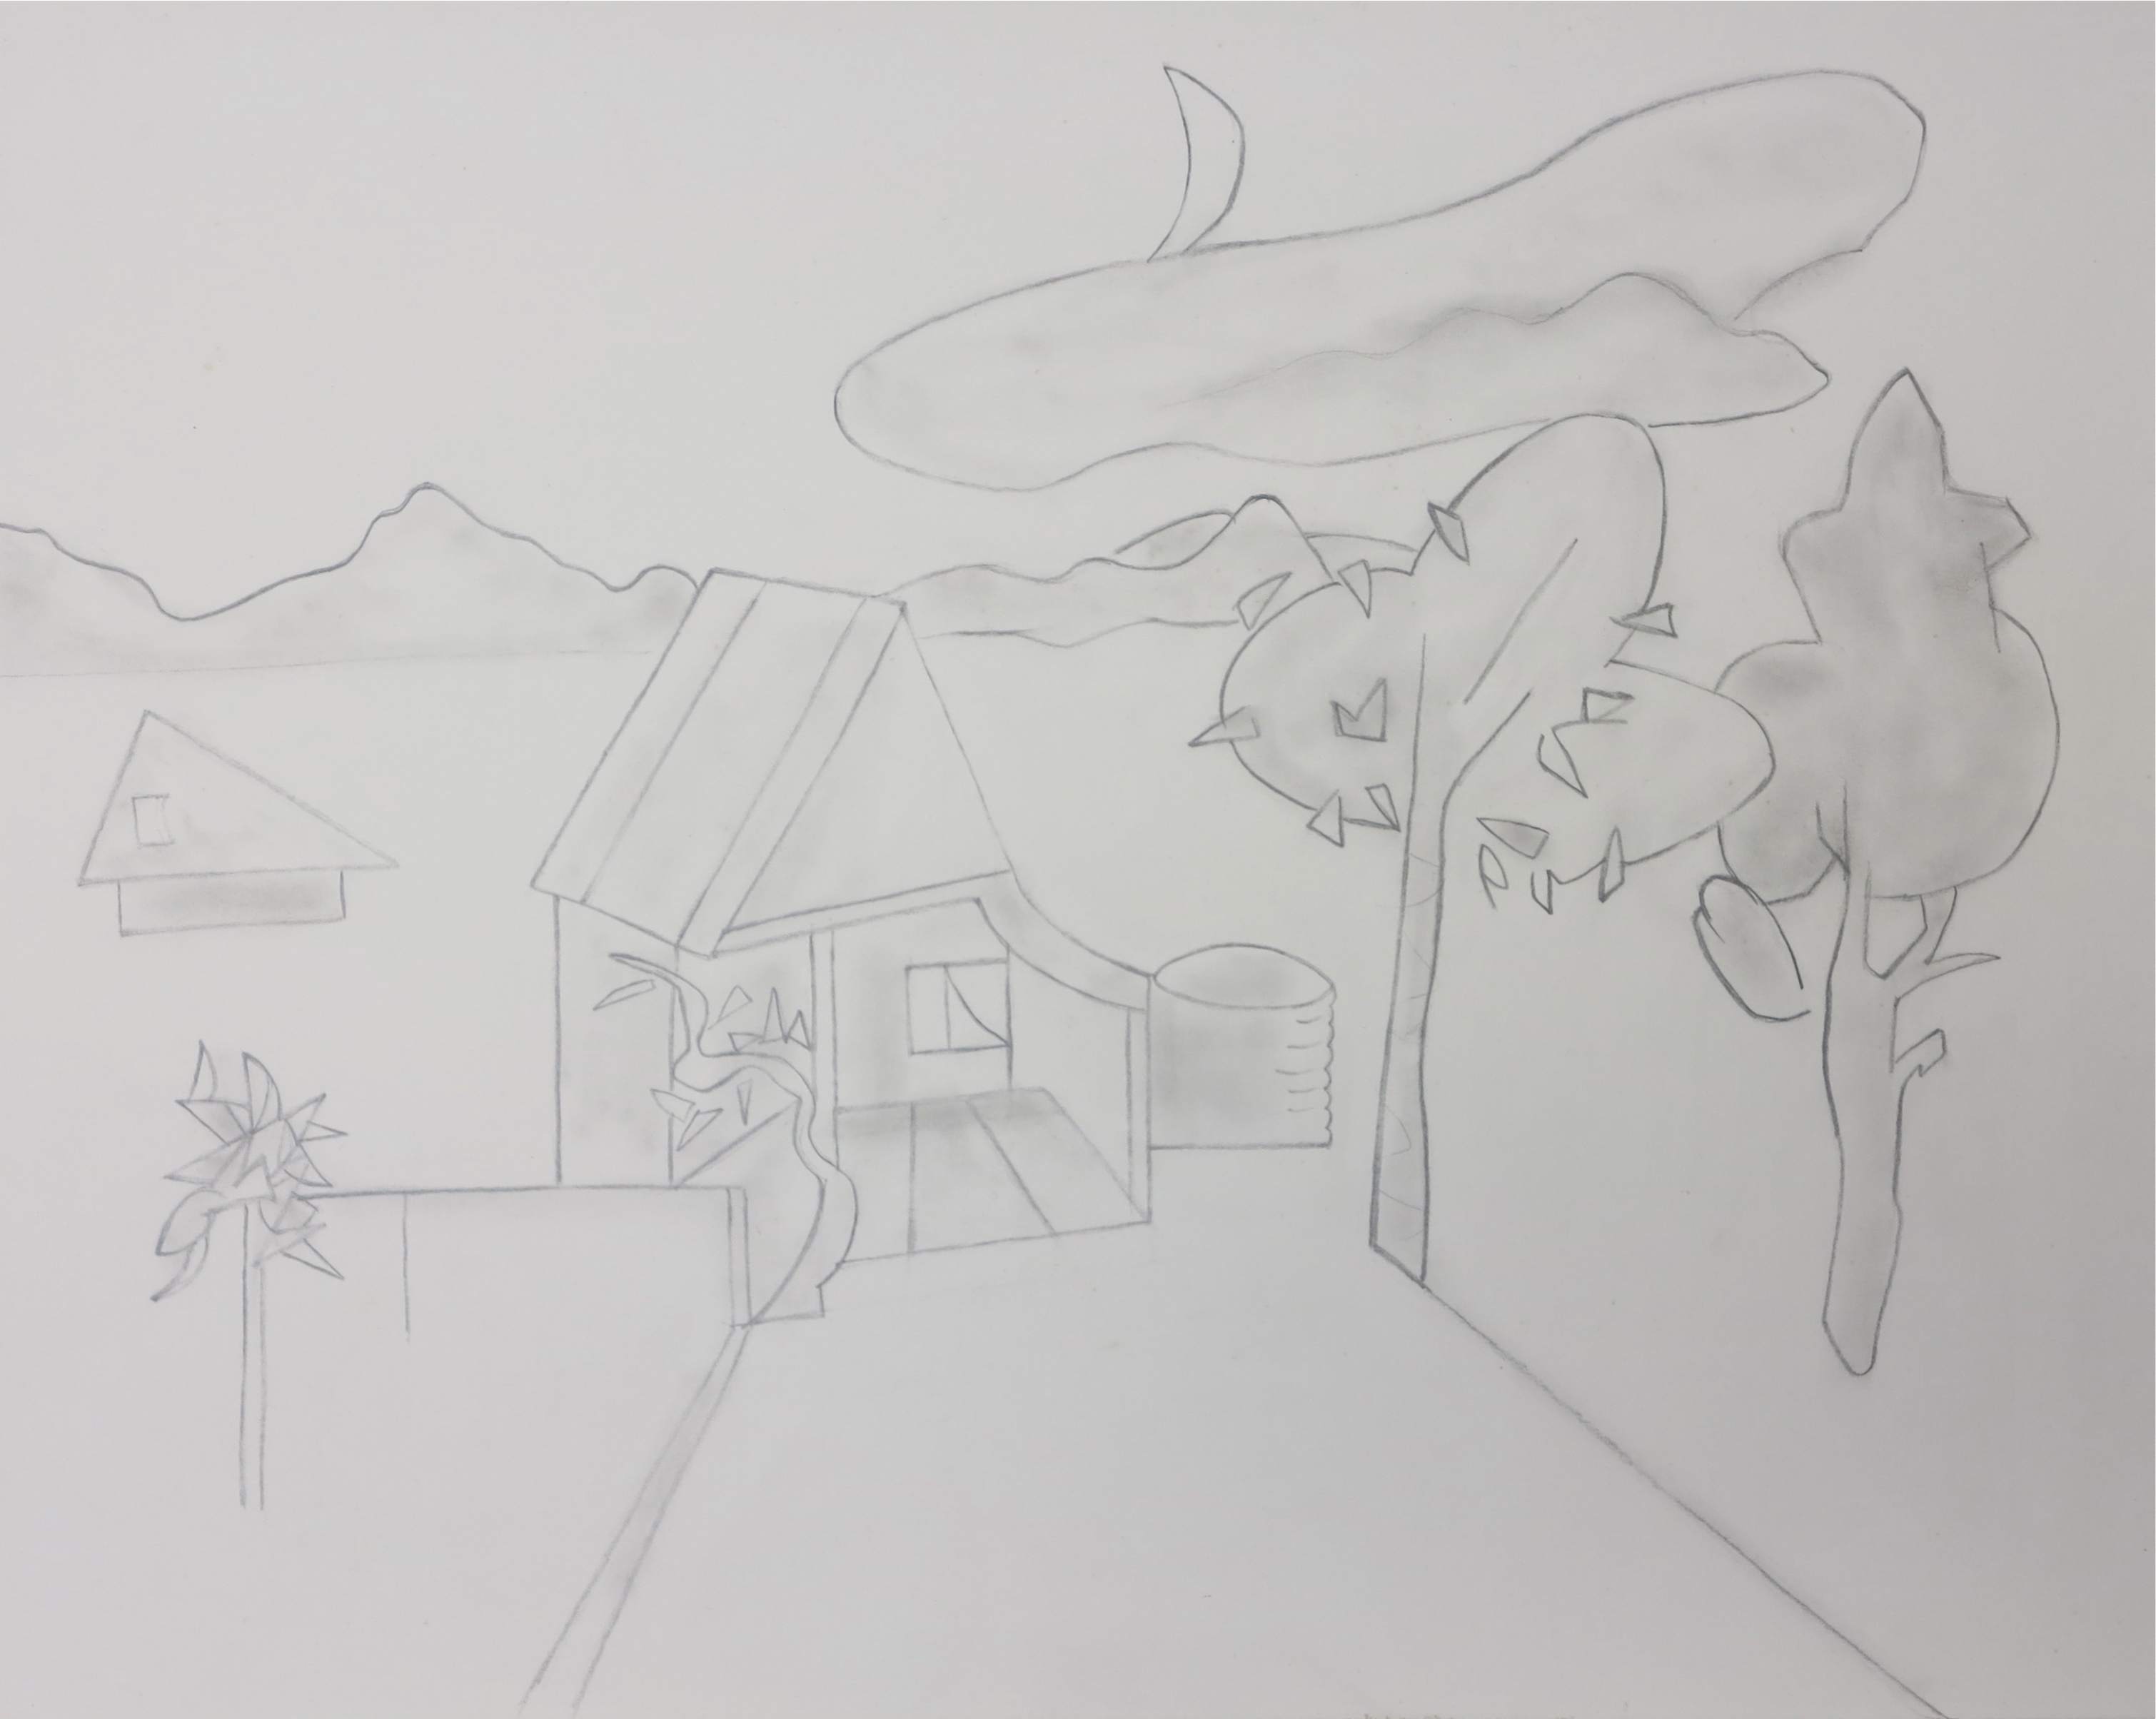 Farmhouse, evening, pencil